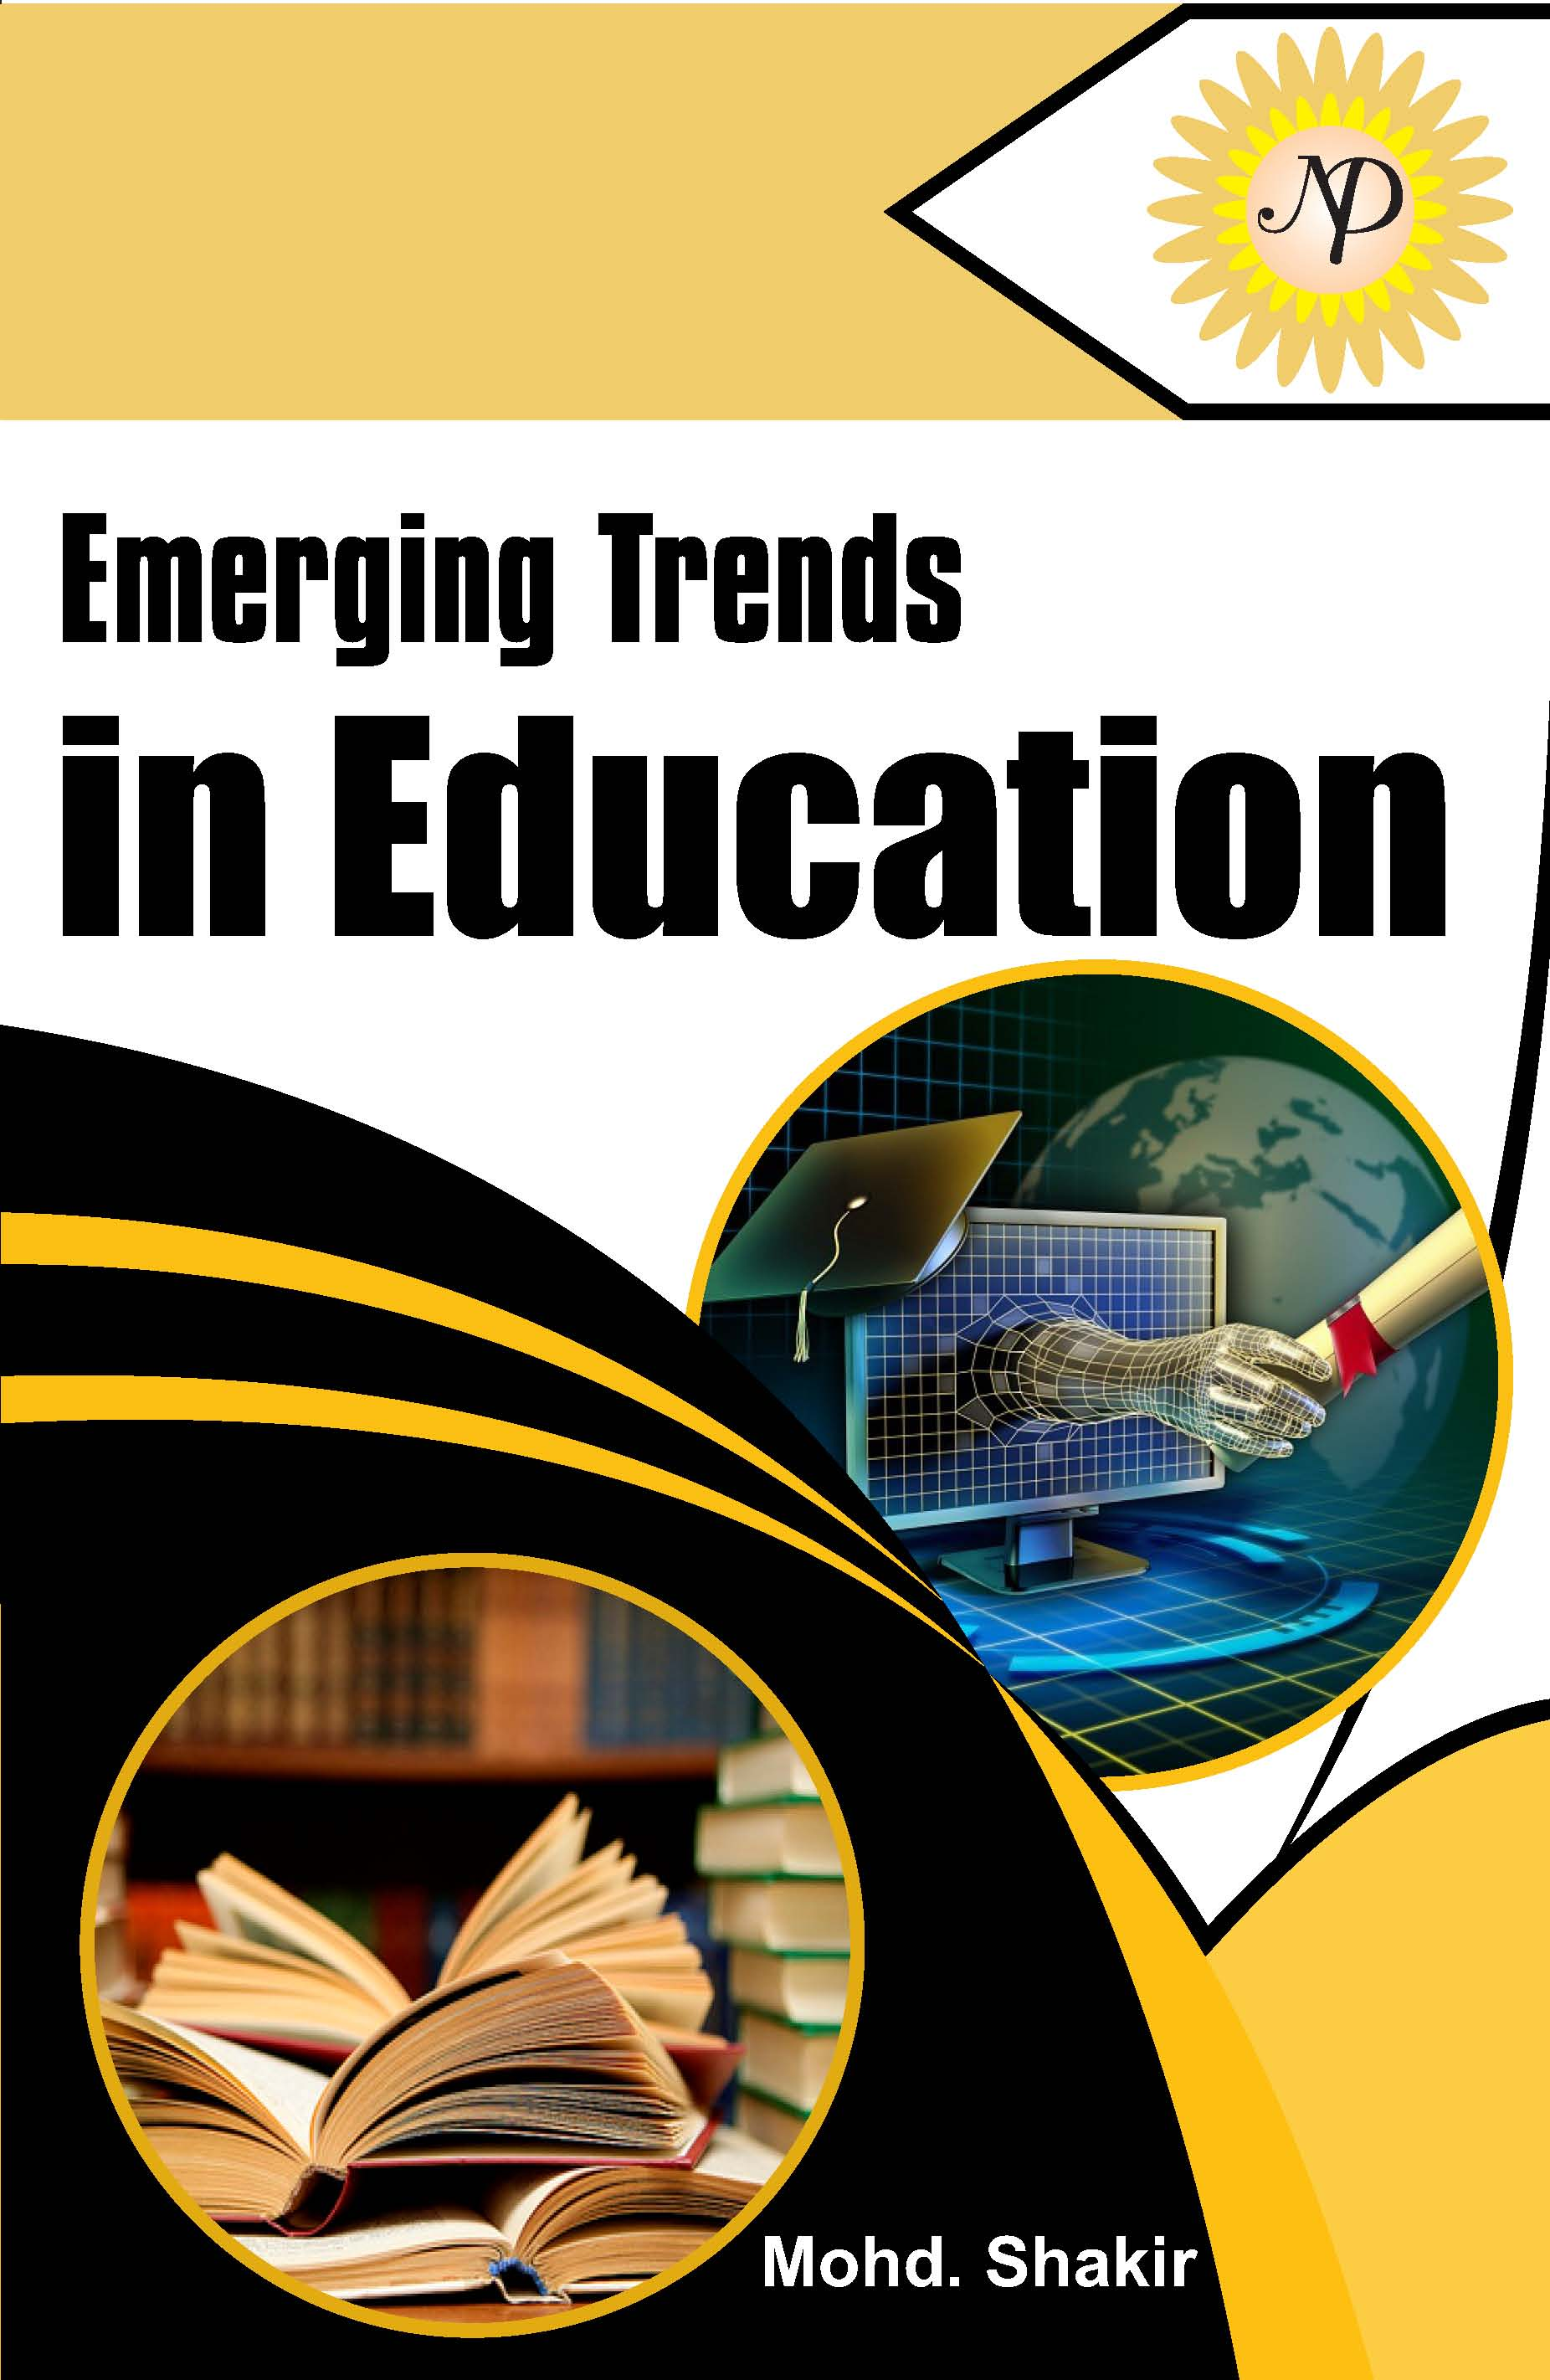 Emerging Trends in Education.jpg